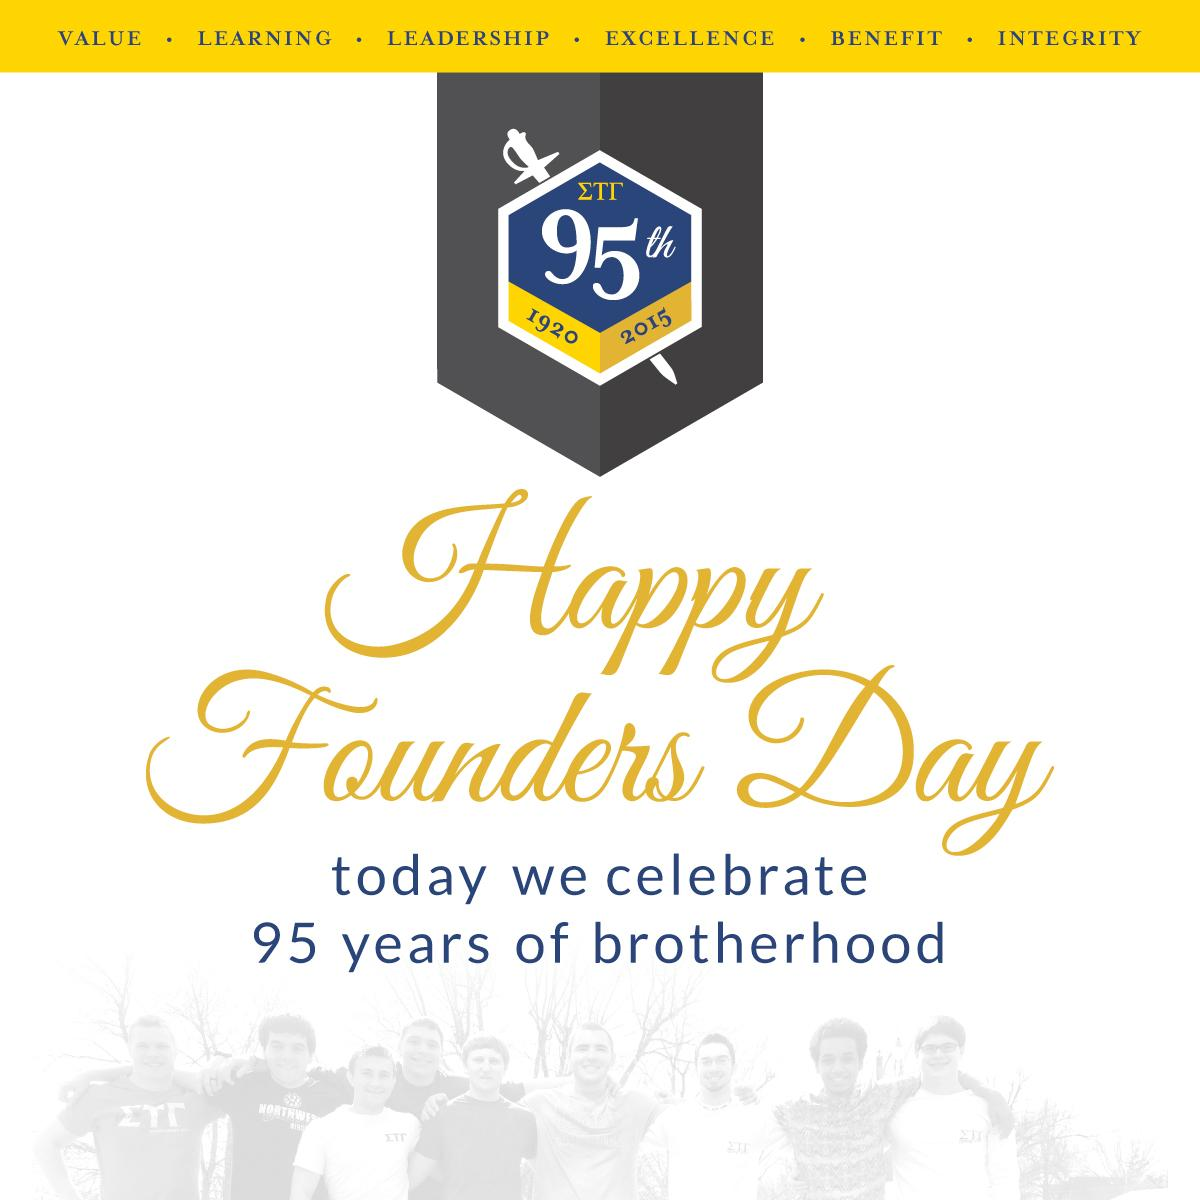 CELEBRATE. HONOR. GIVE. A Brotherhood 95 years in the making. Cheers!! http://t.co/Ll06aRjoTj